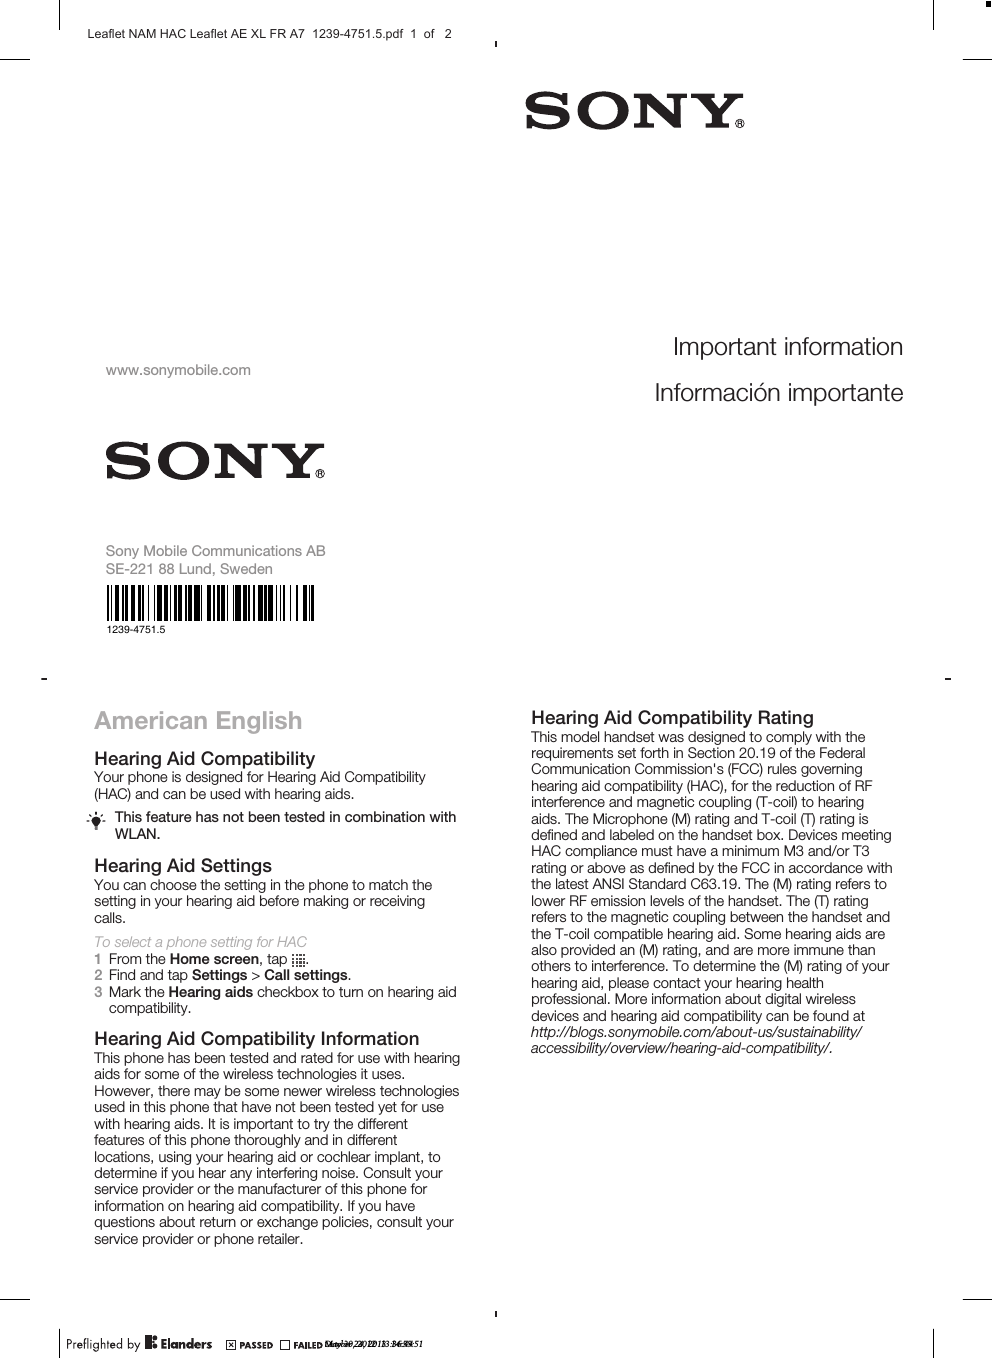 Sony Mobile Communications PM-0723 SMART PHONE User Manual A7 8P indd